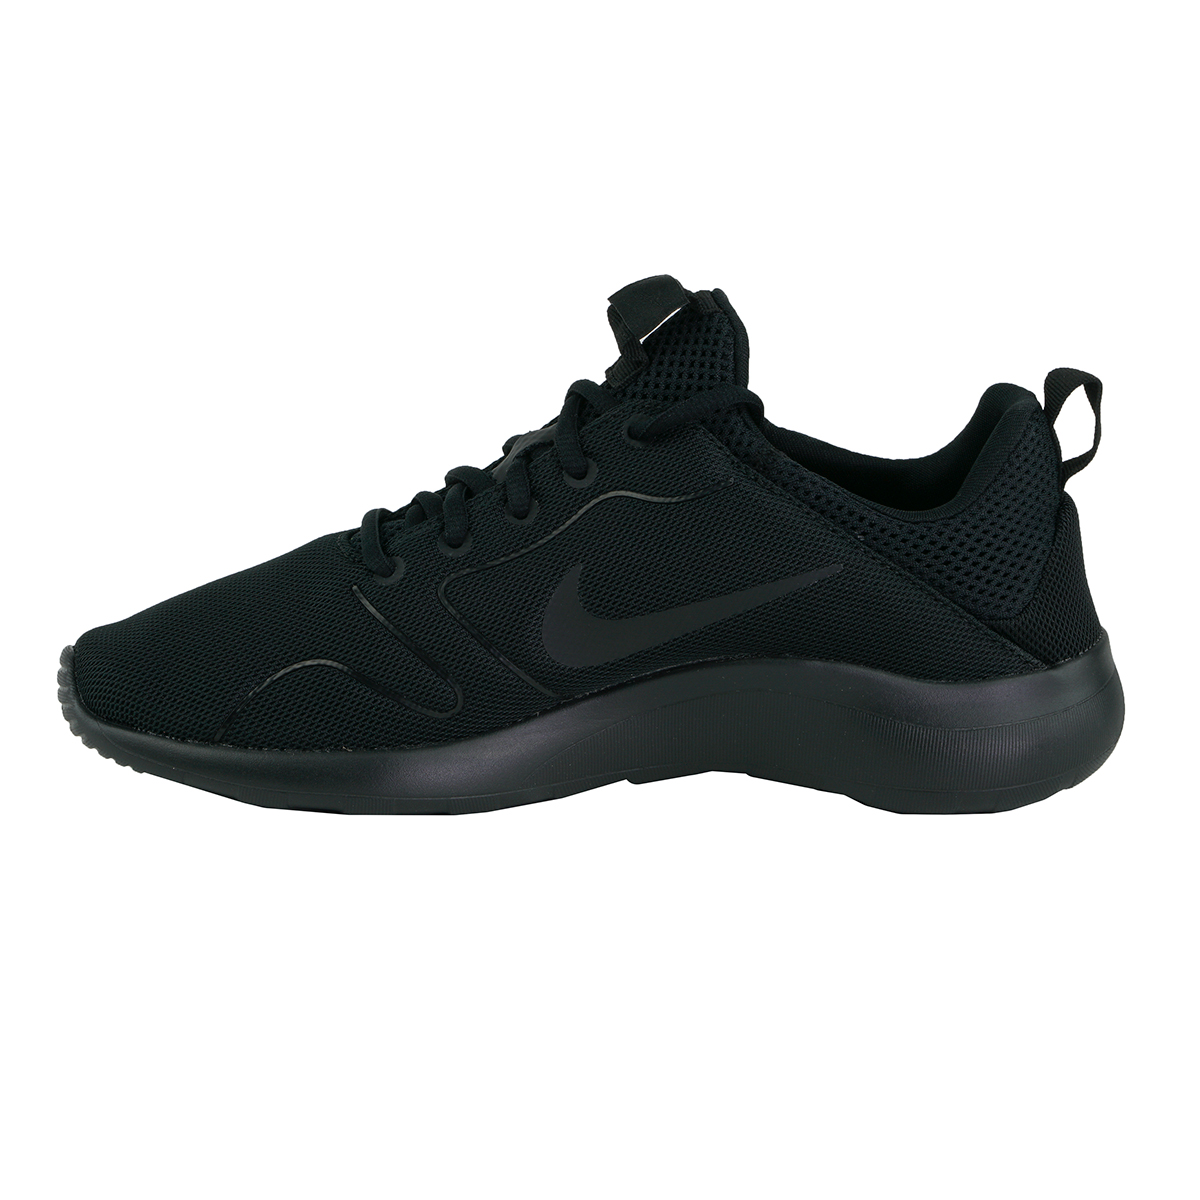 Nike-Men-039-s-Kaishi-2-0-SE-Running-Shoes